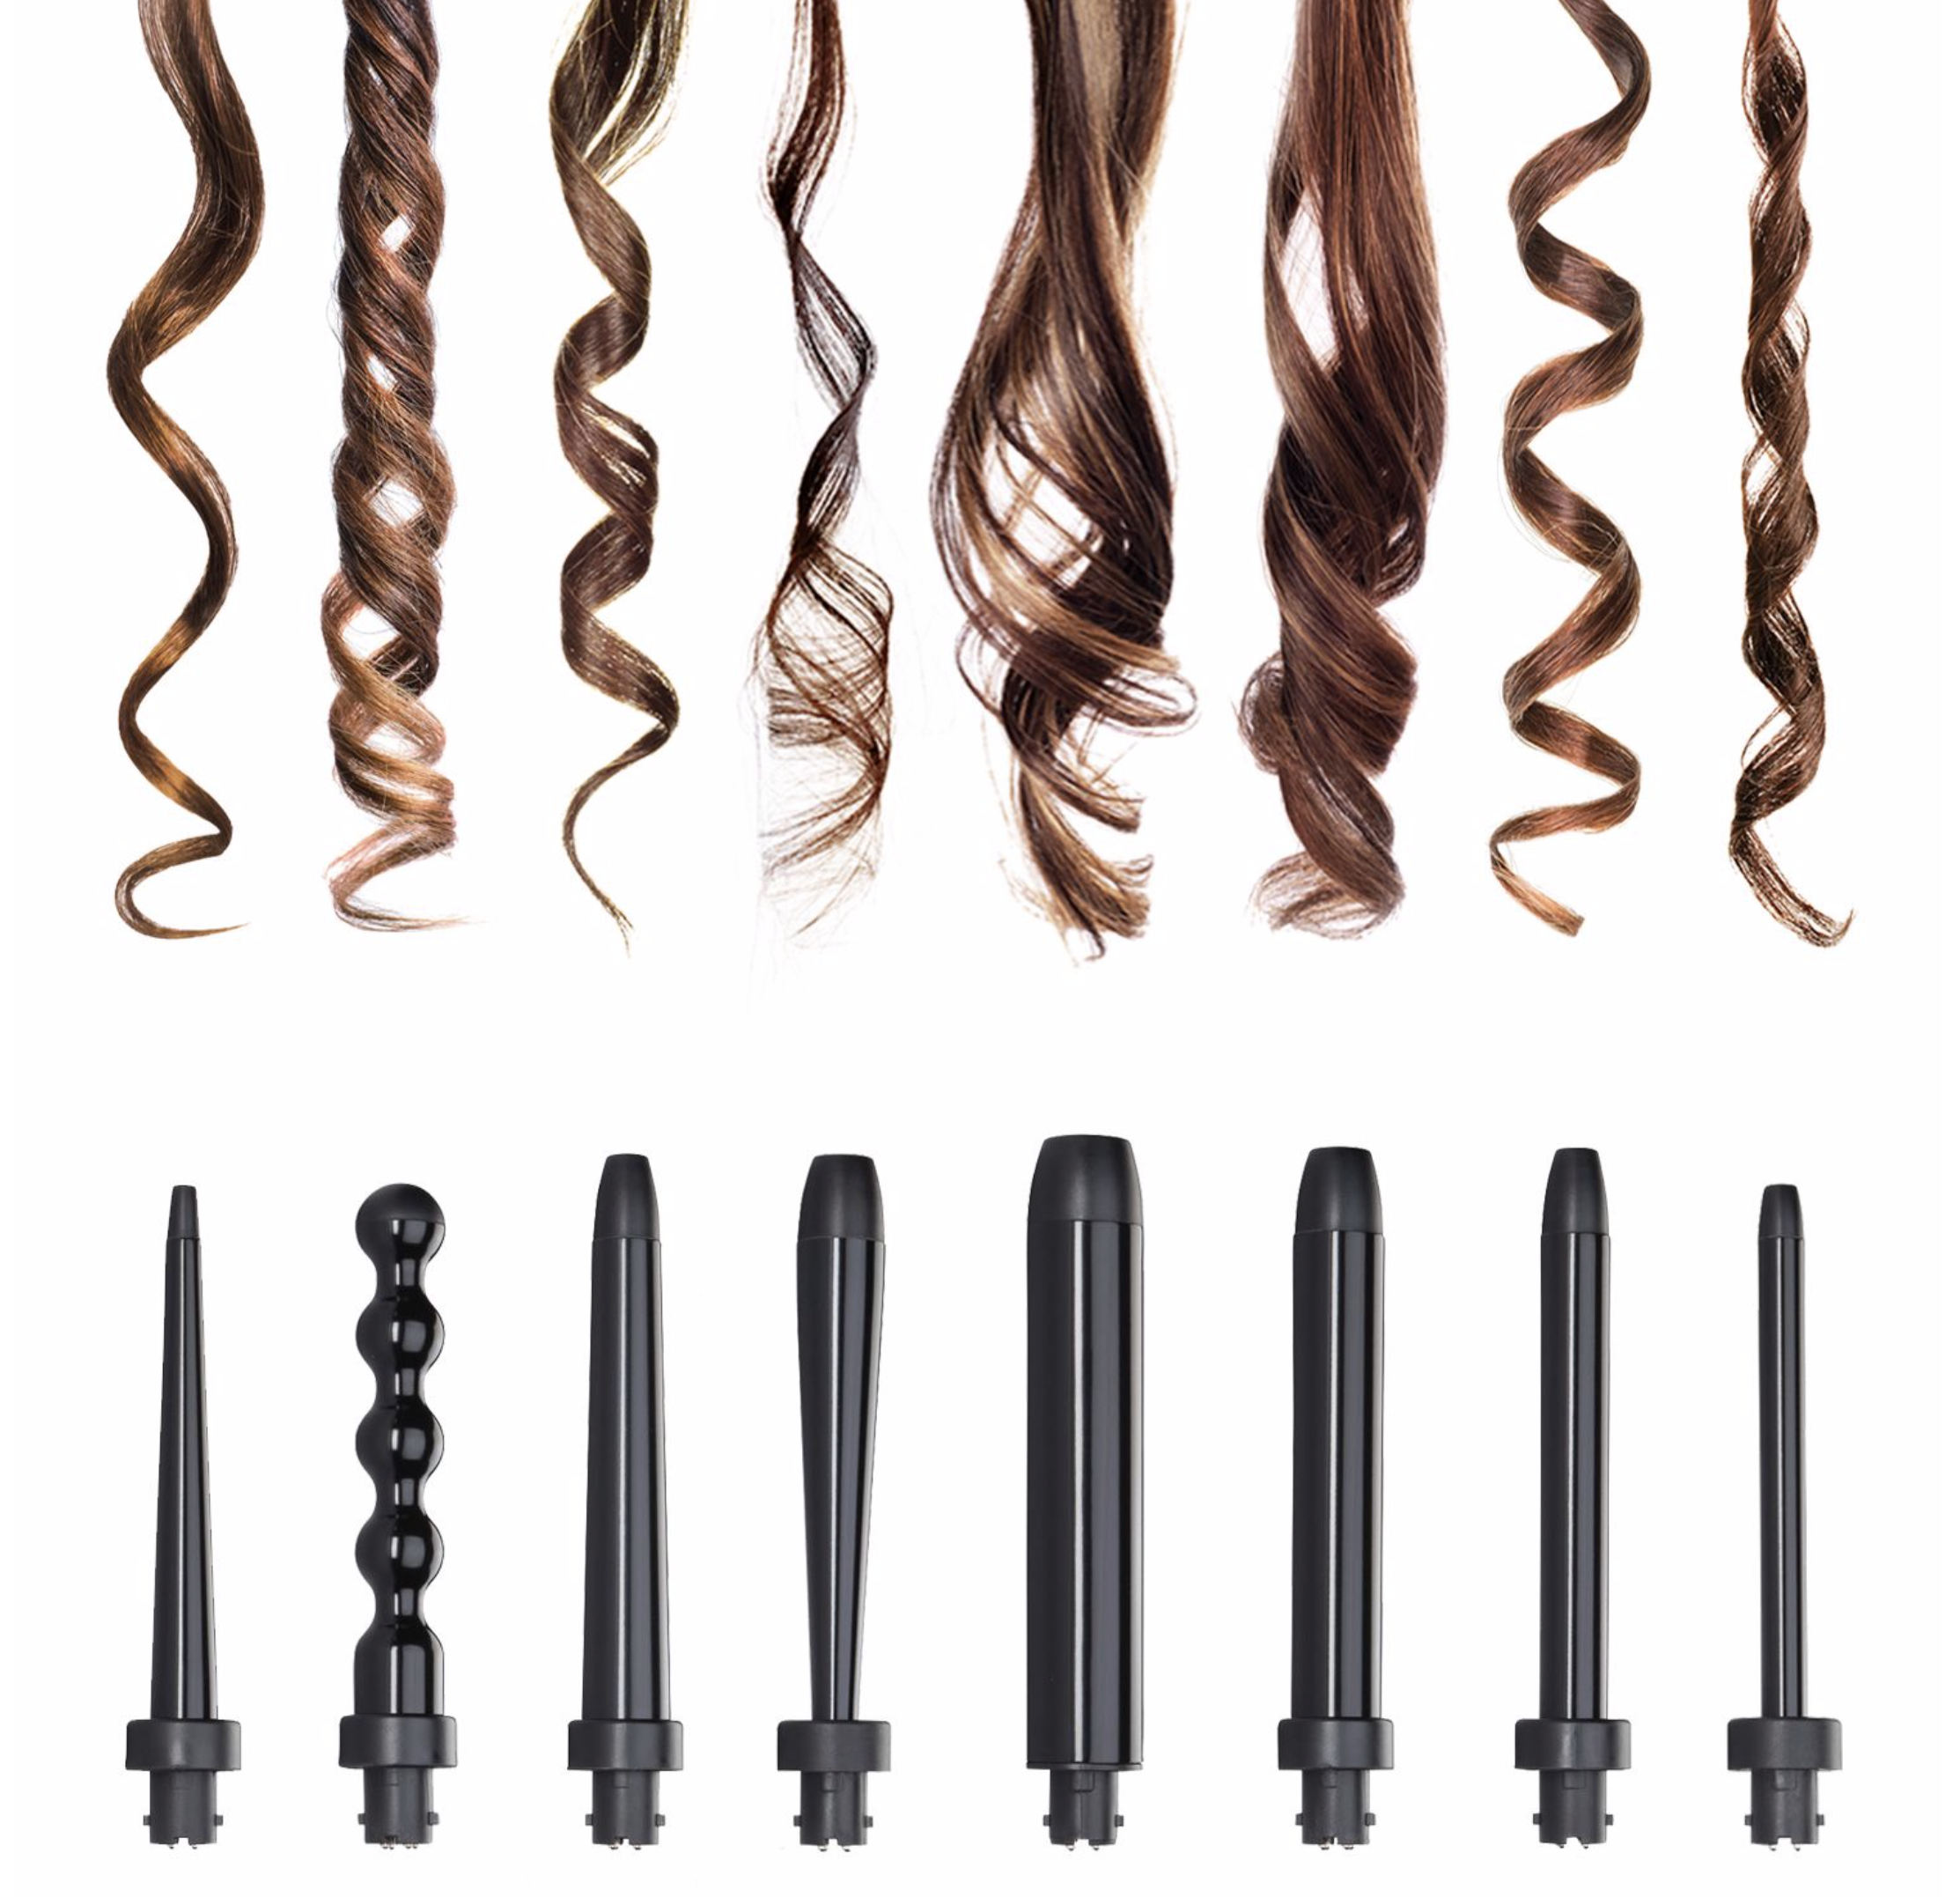 Octowand NuMe curls with 8 wands